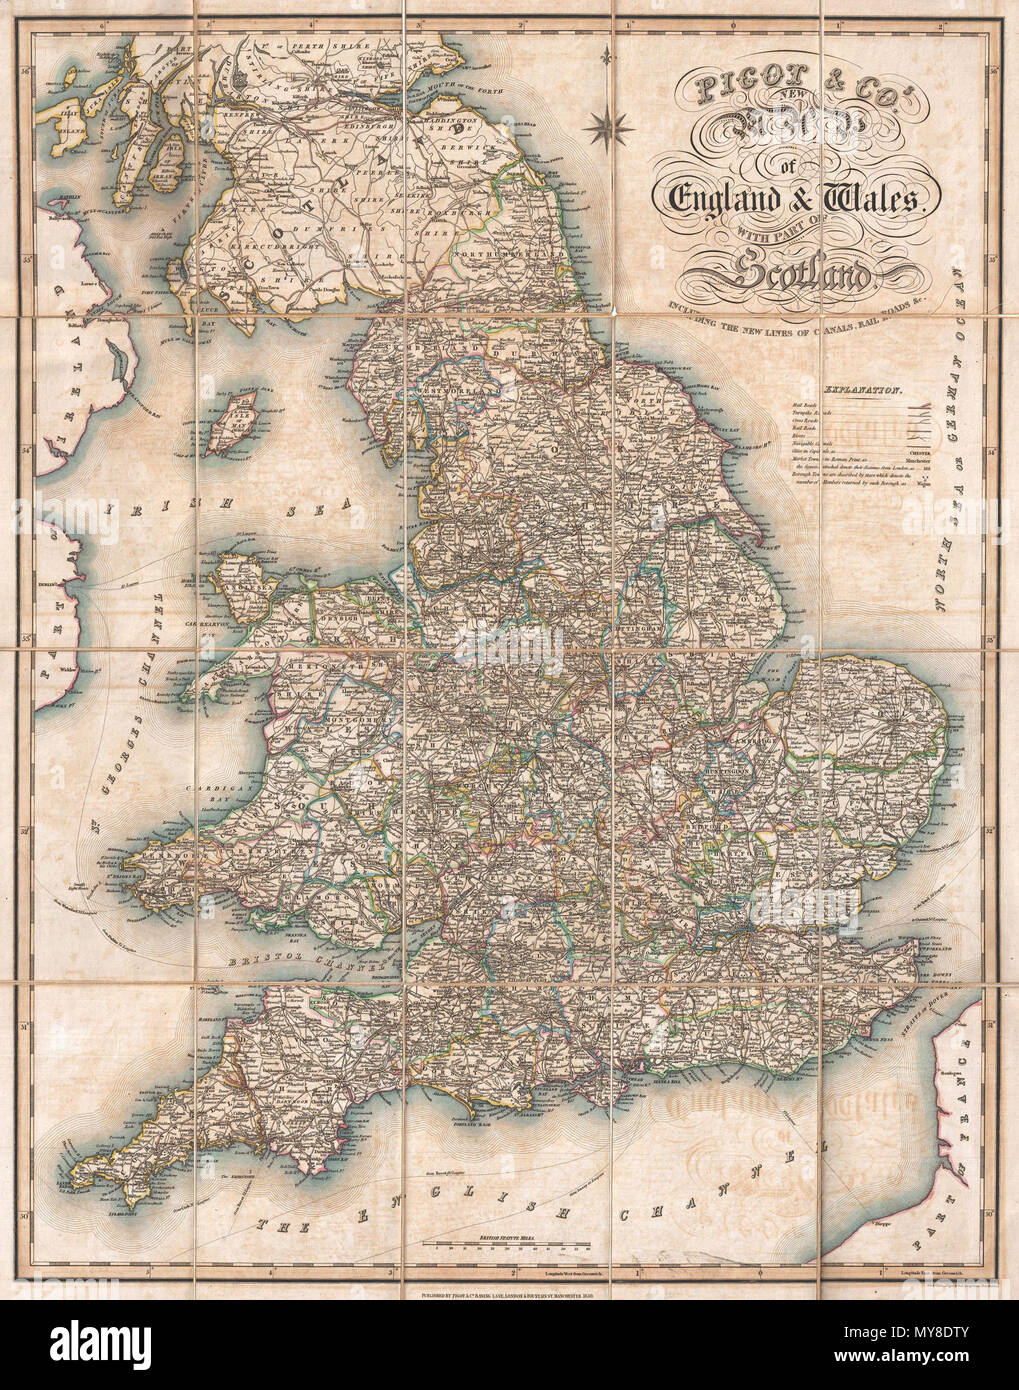 Map Of England With Towns Cities And Villages.Pigot Co S New Map Of England Wales With Part Of Scotland